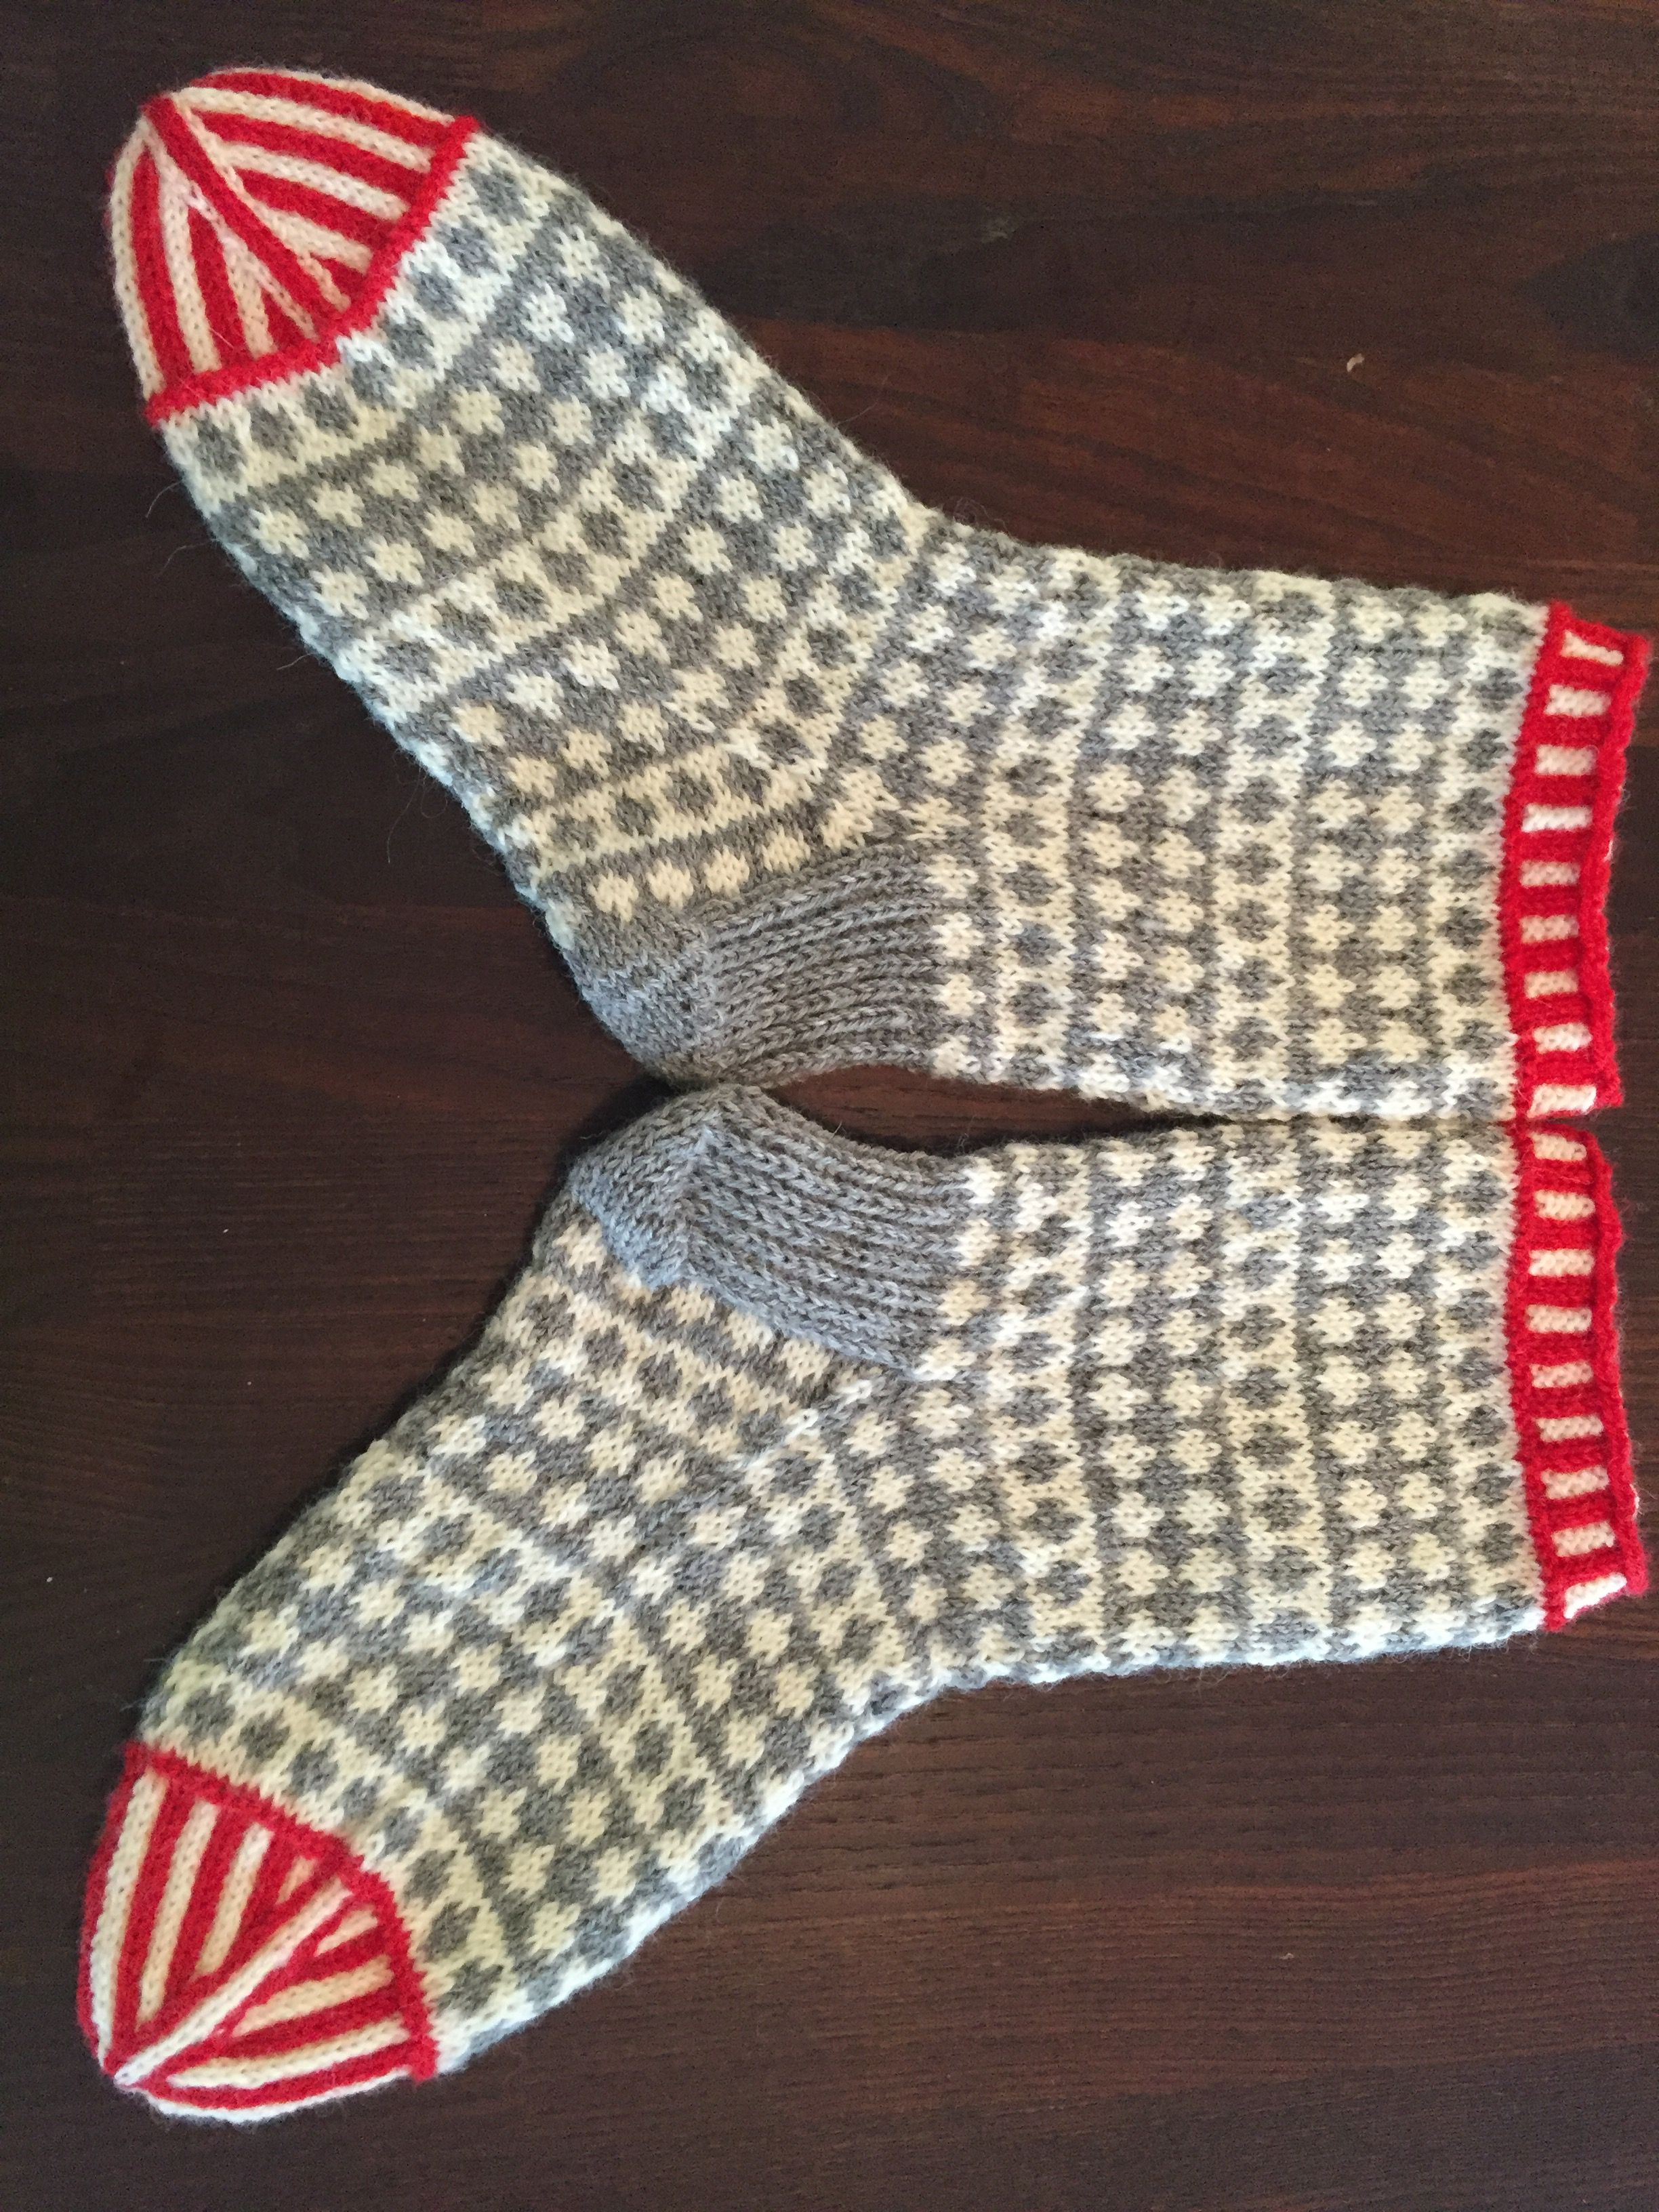 Pin by Bulldog Daddy on Knit 1 Purl 2 | Pinterest | Socks, Knit ...